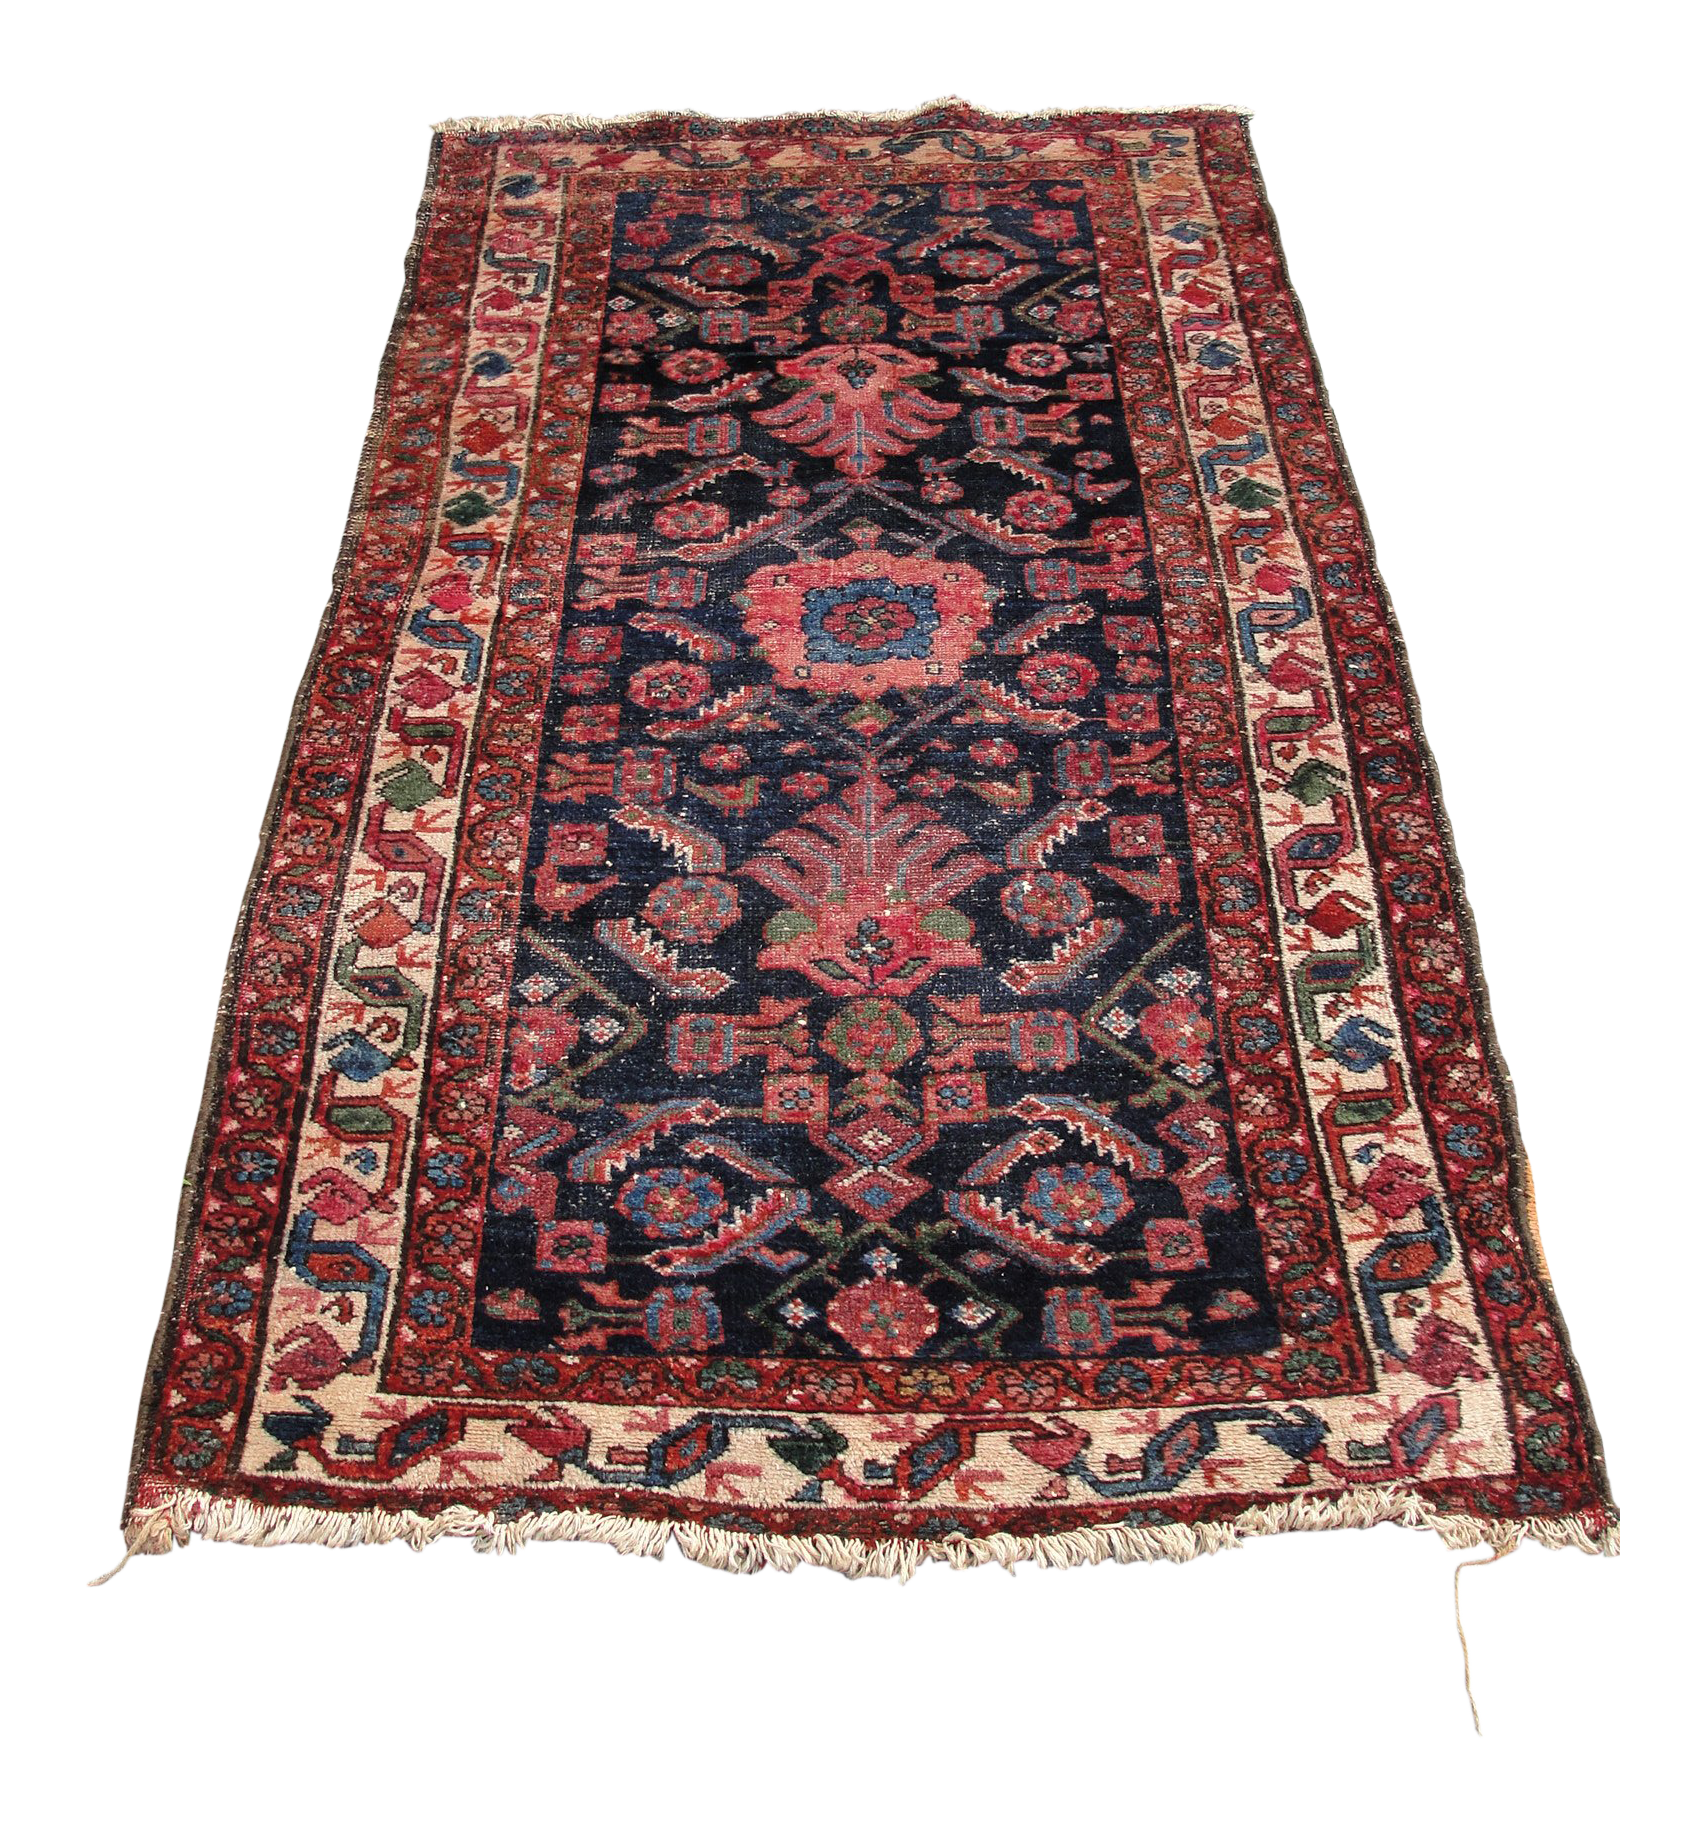 1940s Vintage Persian Hand Knotted Wool Rug 3 2 5 9 Chairish